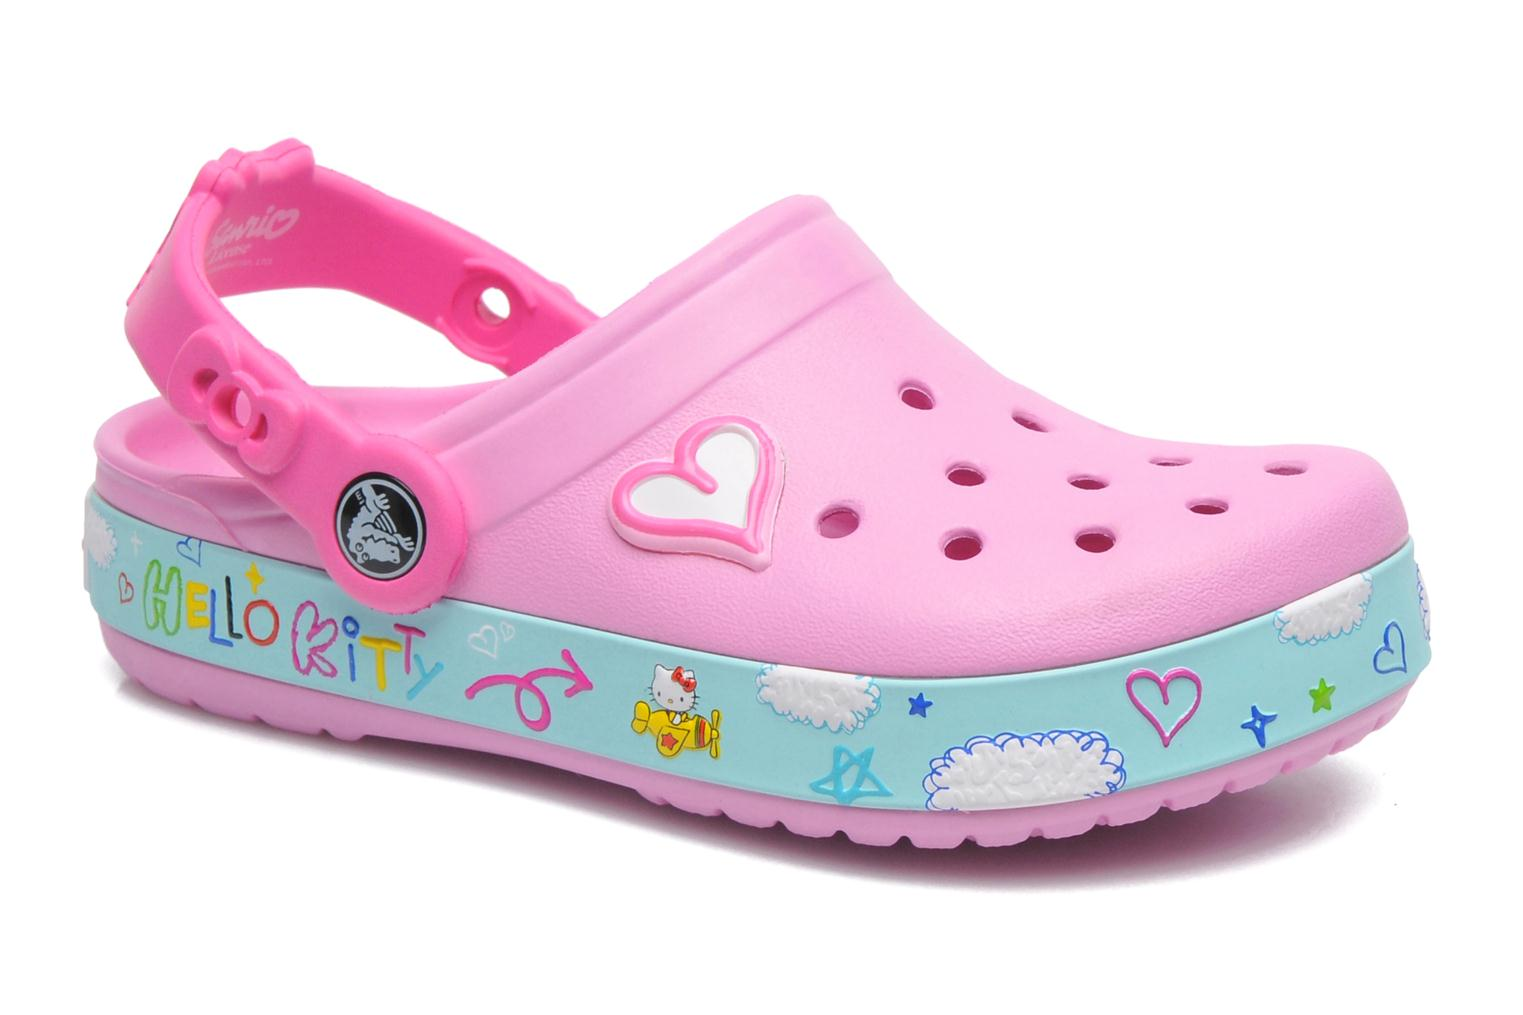 CB Hello Kitty Plane Clog EU Carnation